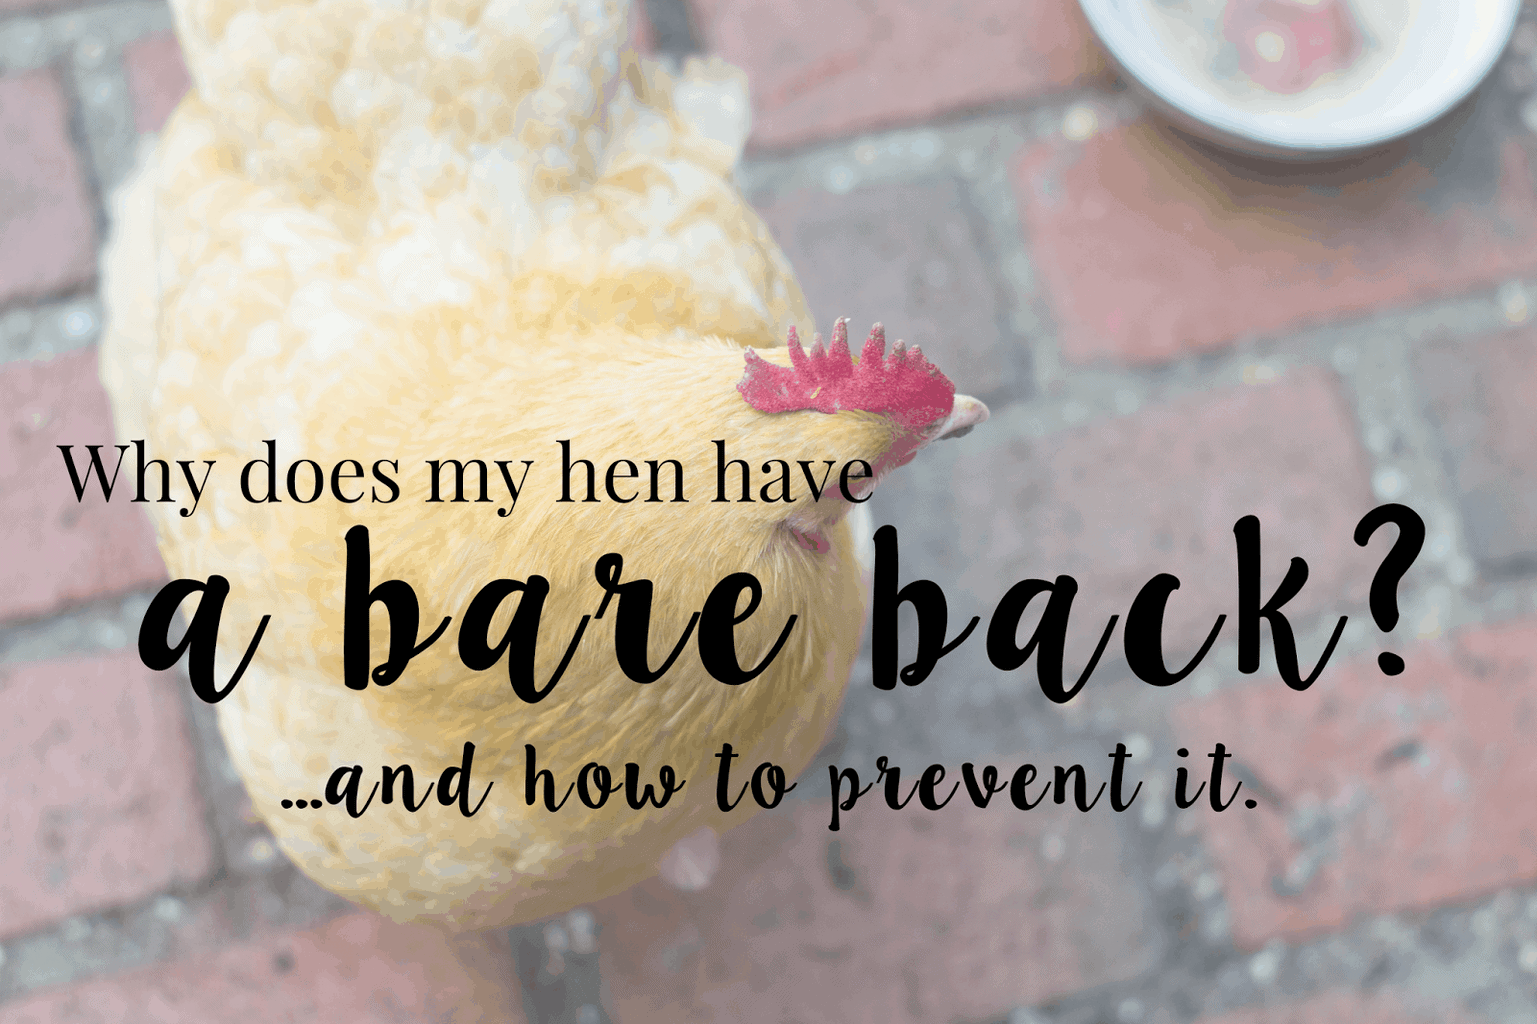 Why Does My Hen Have a Bare Back? And how to prevent it